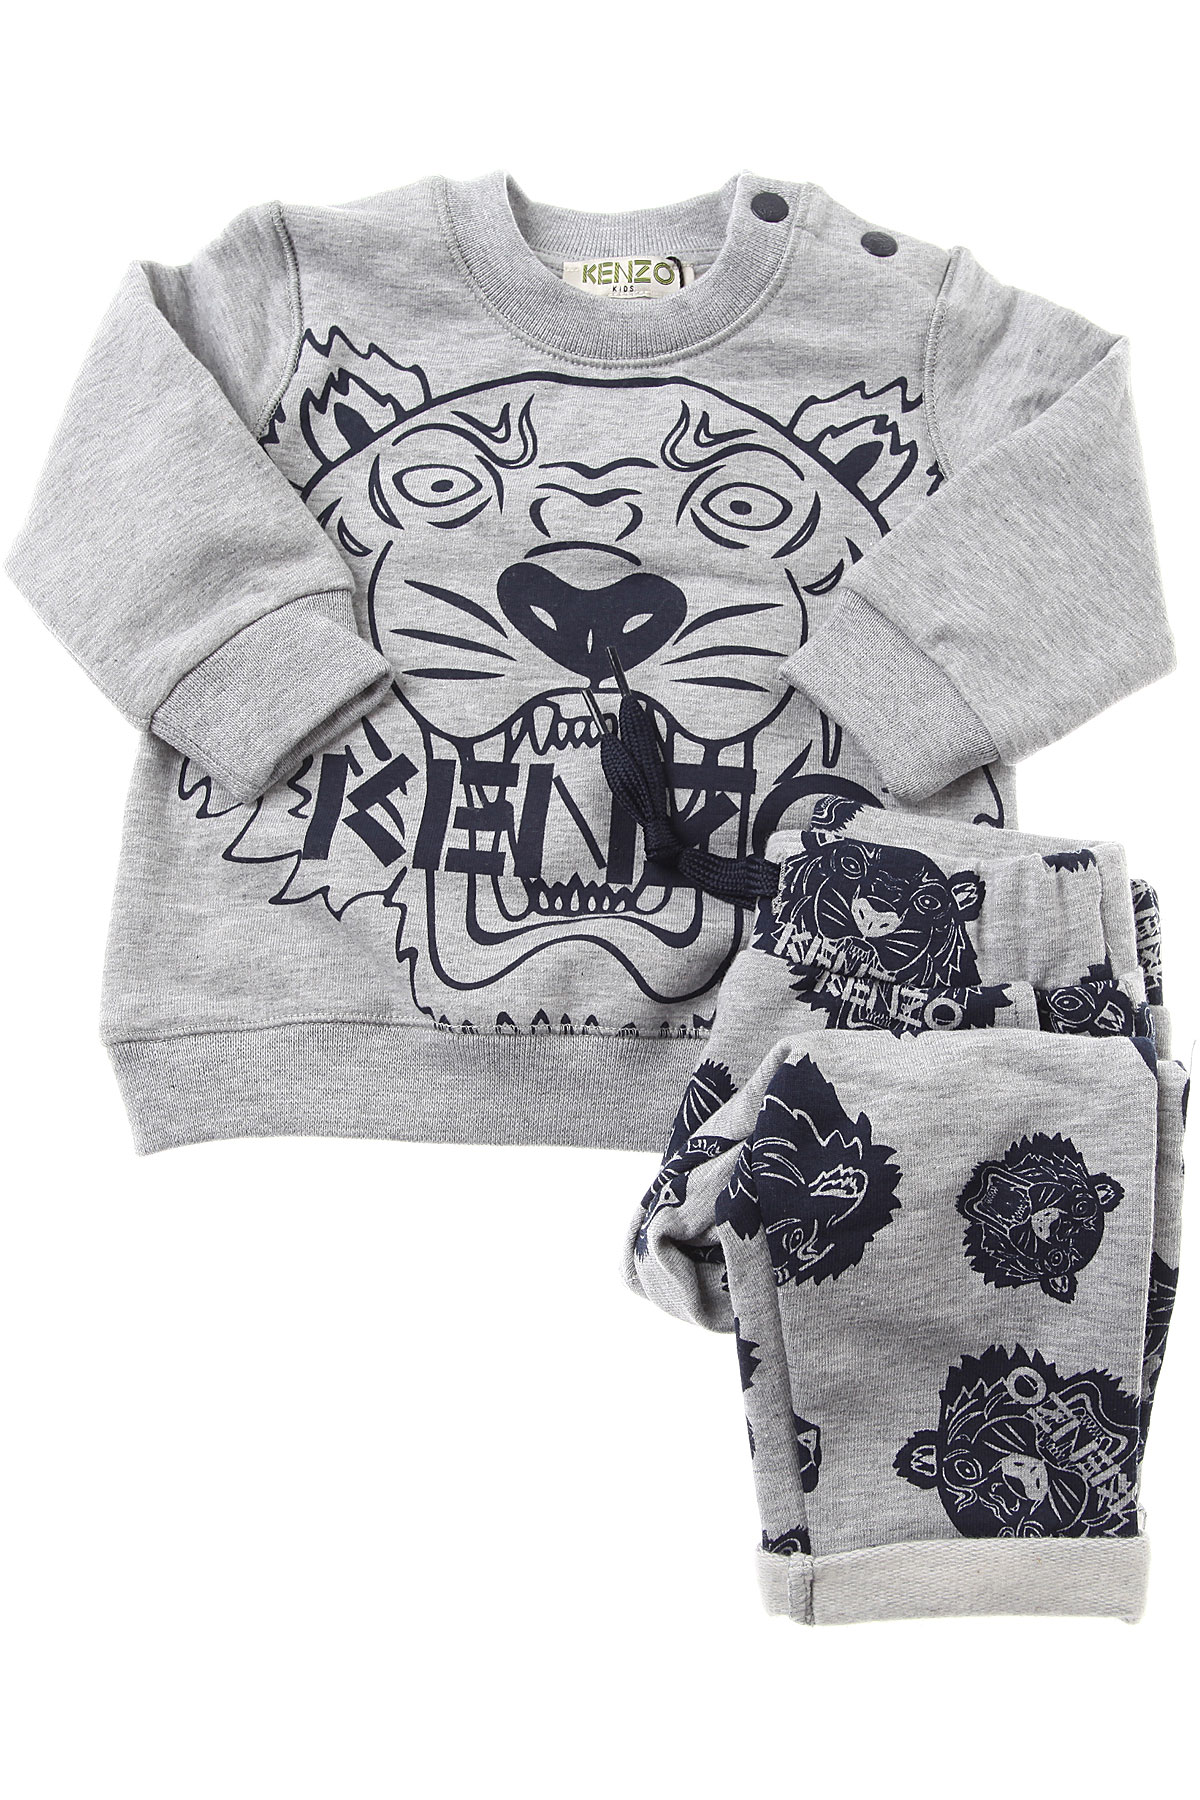 Image of Kenzo Baby Sets for Boys, Grey, Cotton, 2017, 12M 18M 2Y 6M 9M